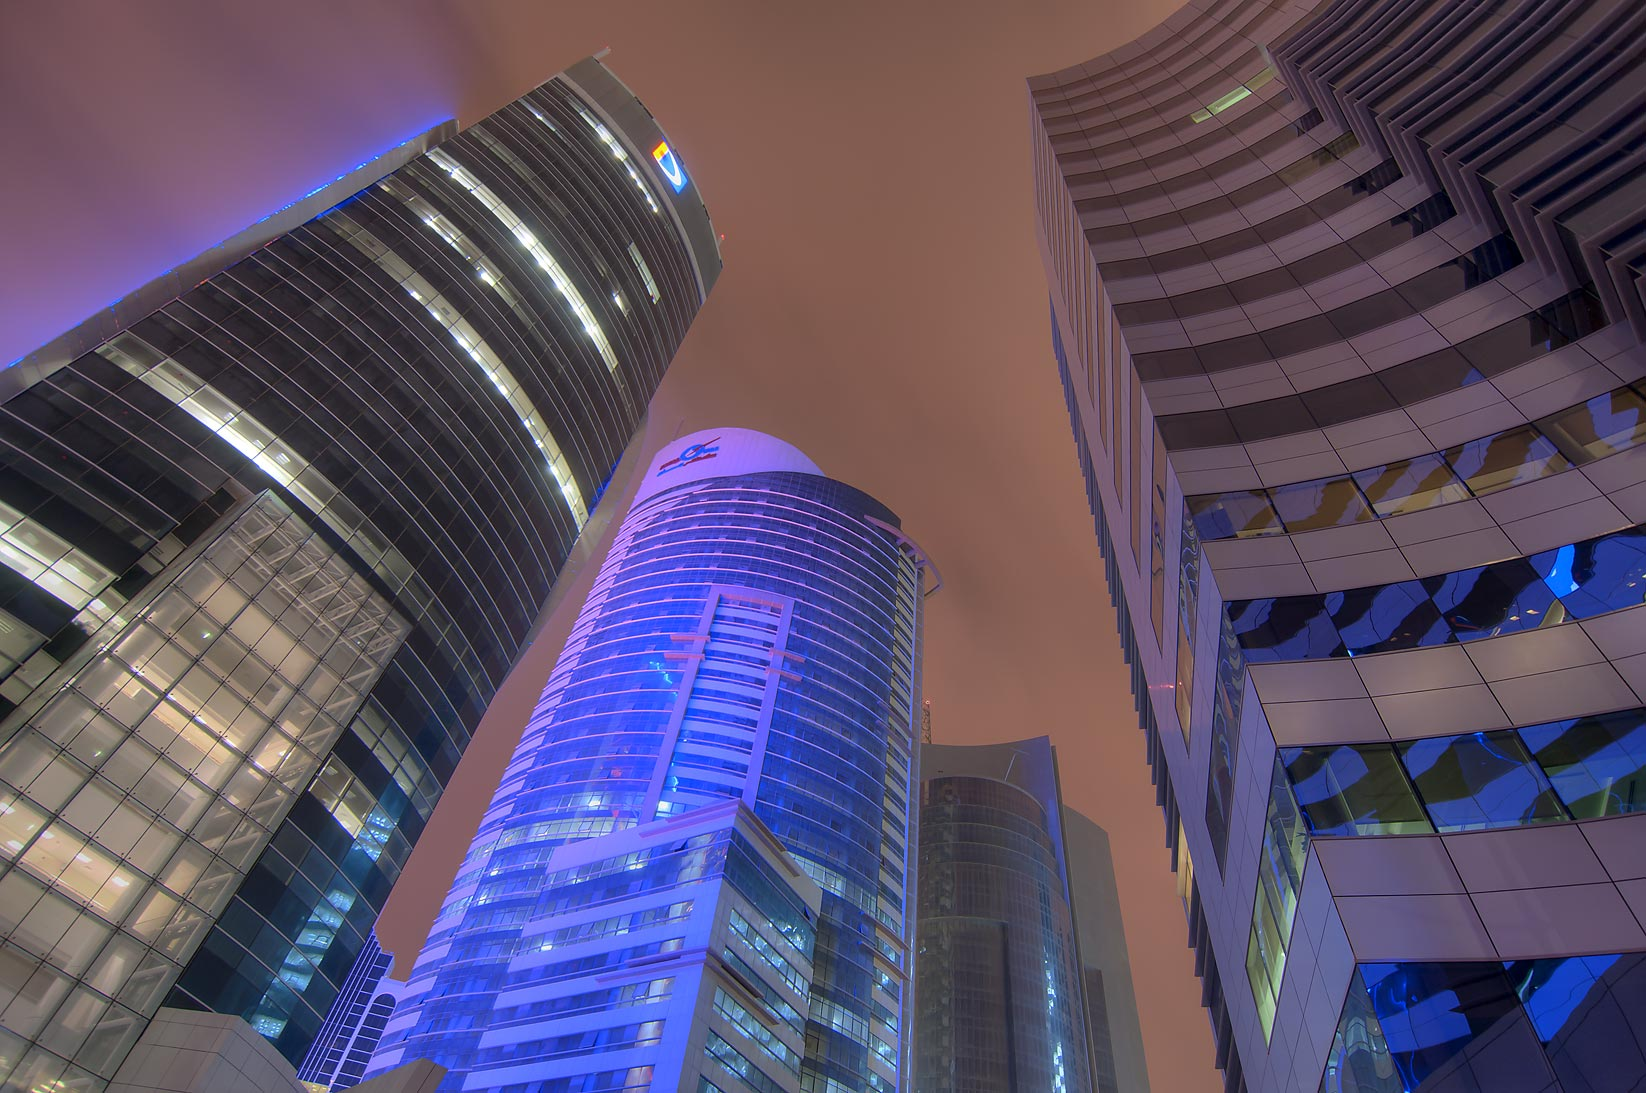 Doha Bank, Ramez, and Ashghal towers in West Bay. Doha, Qatar